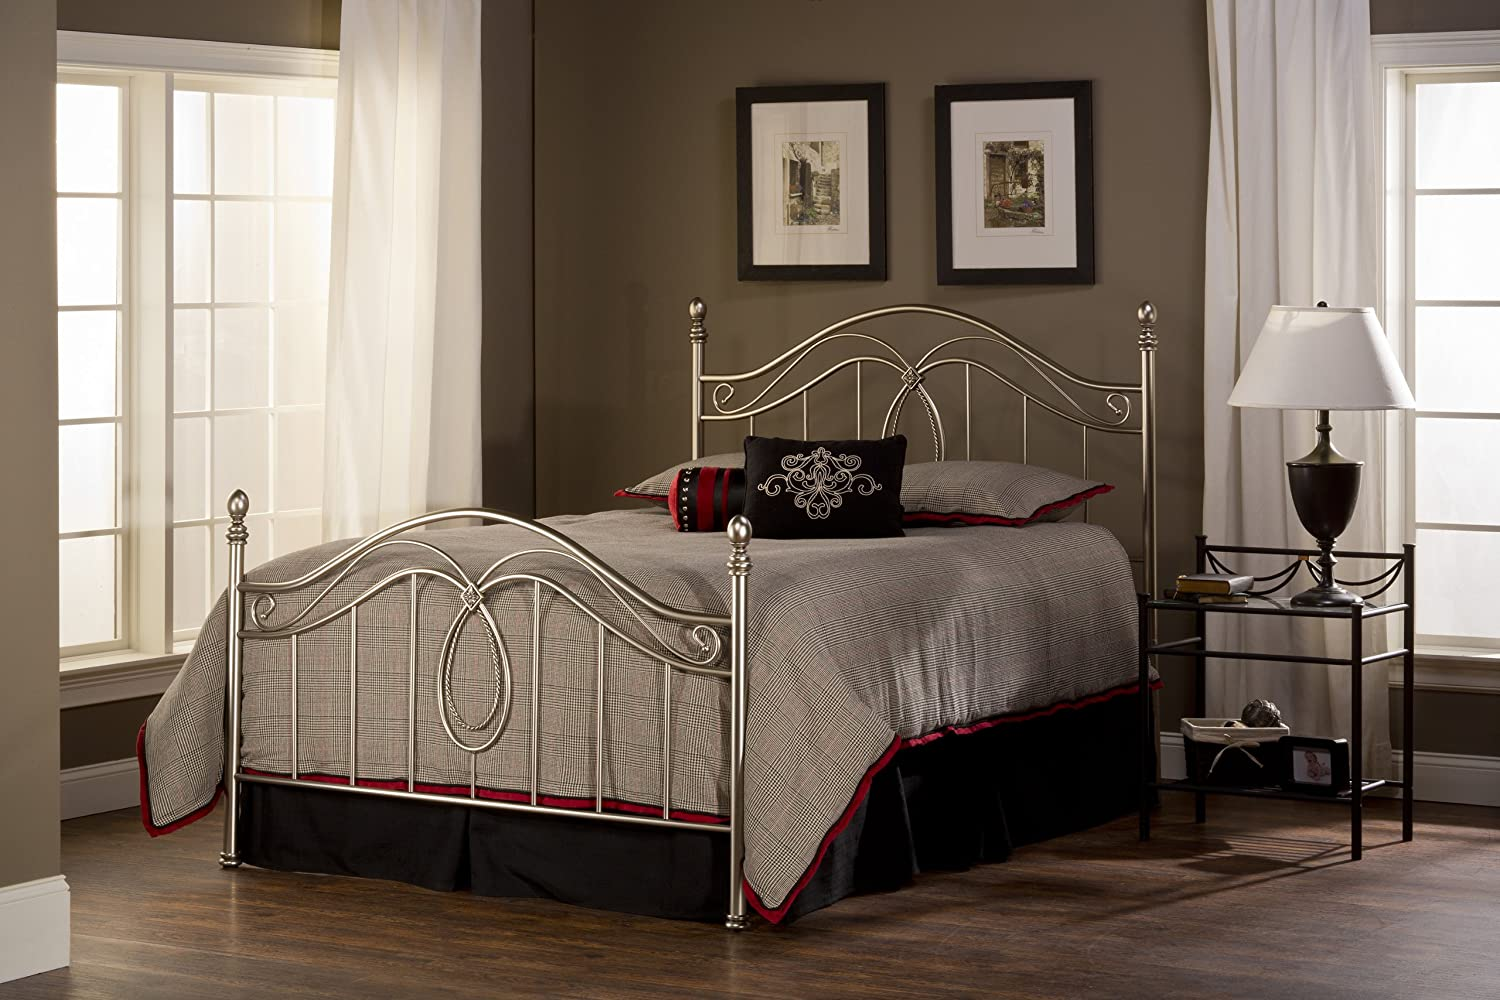 Amazon.com: Hillsdale Furniture 167BQR Milano Bed Set With Rails, Queen,  Antique Pewter: Kitchen U0026 Dining